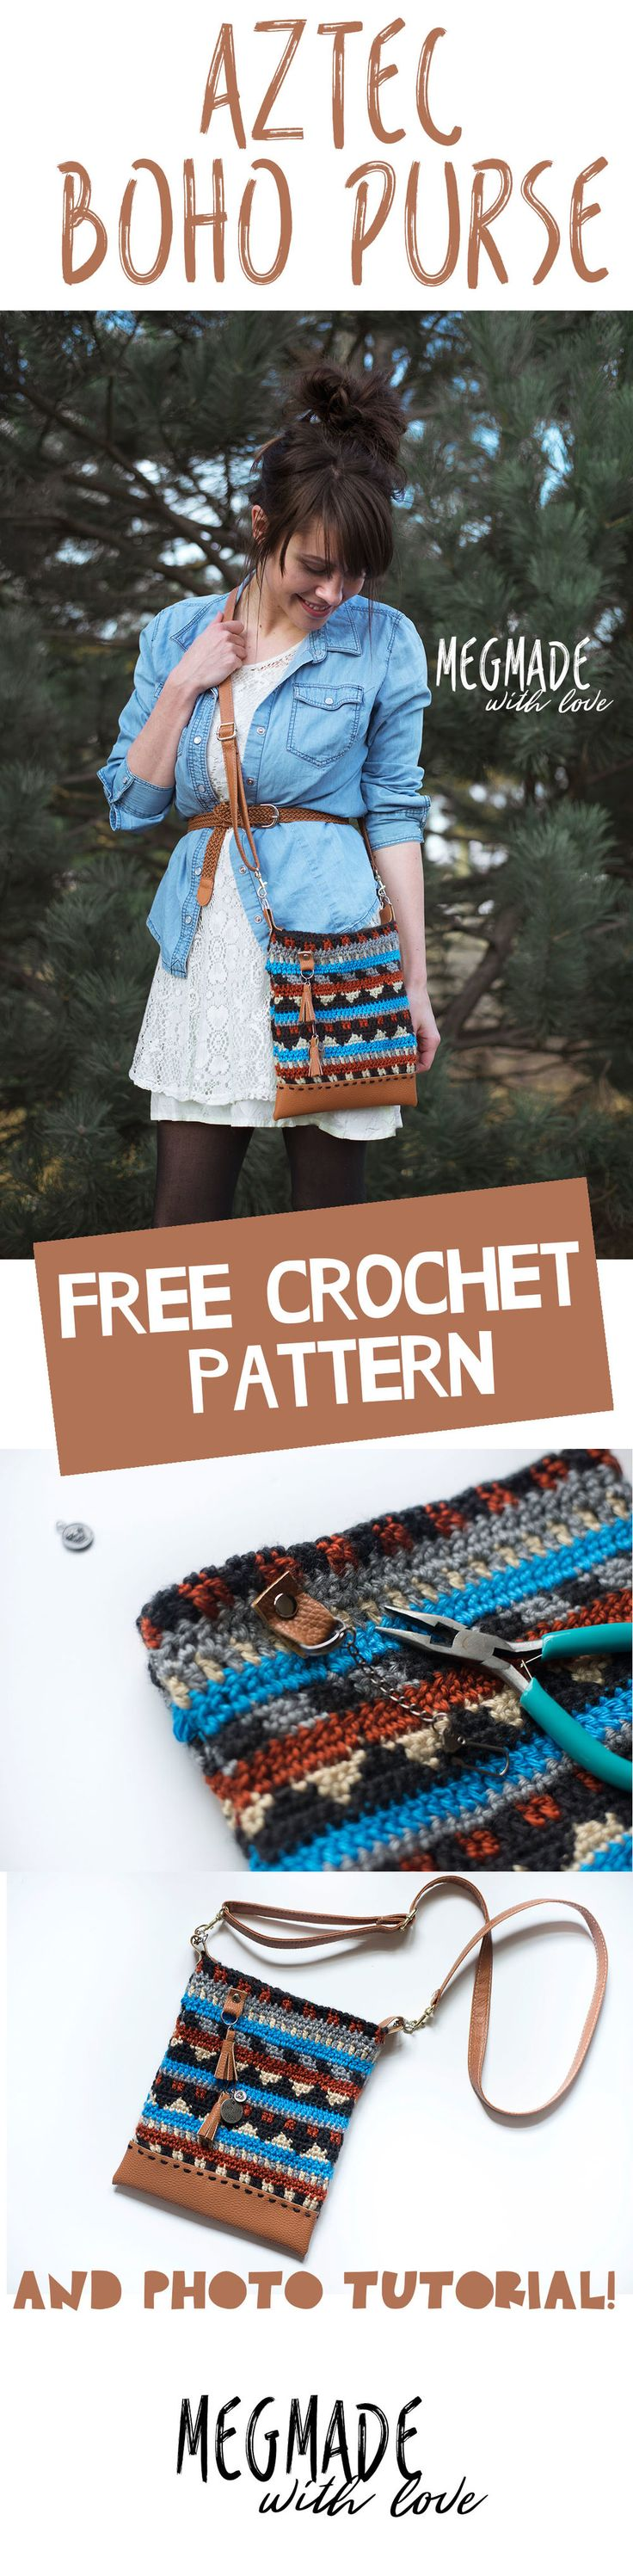 Free Crochet Pattern for Aztec Boho Purse